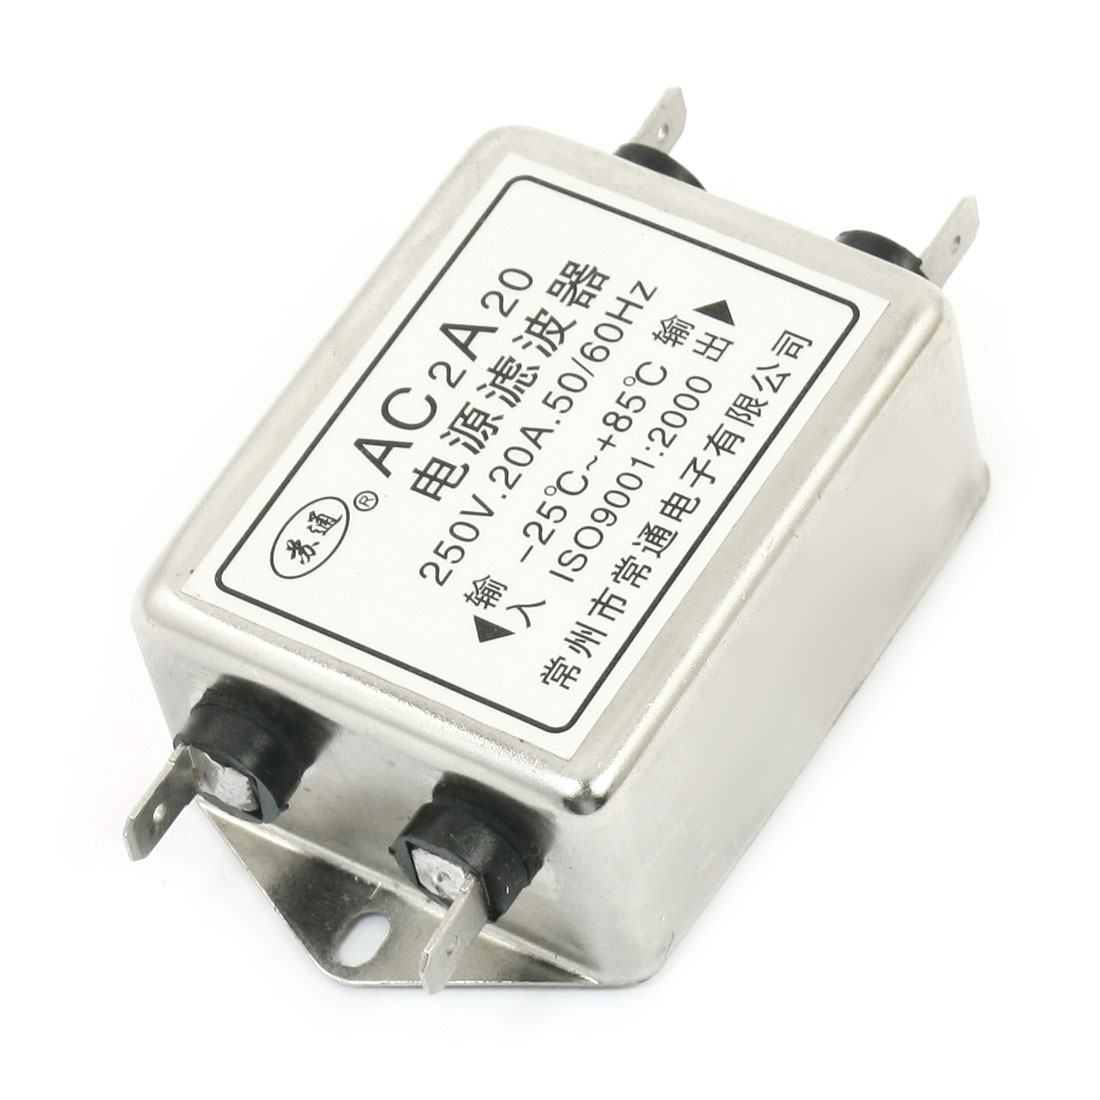 AC250V 10A 4-Pin Soldering Lug Terminal One Phase Metal Noise Suppressor General Purpose Power Line EMI Filter